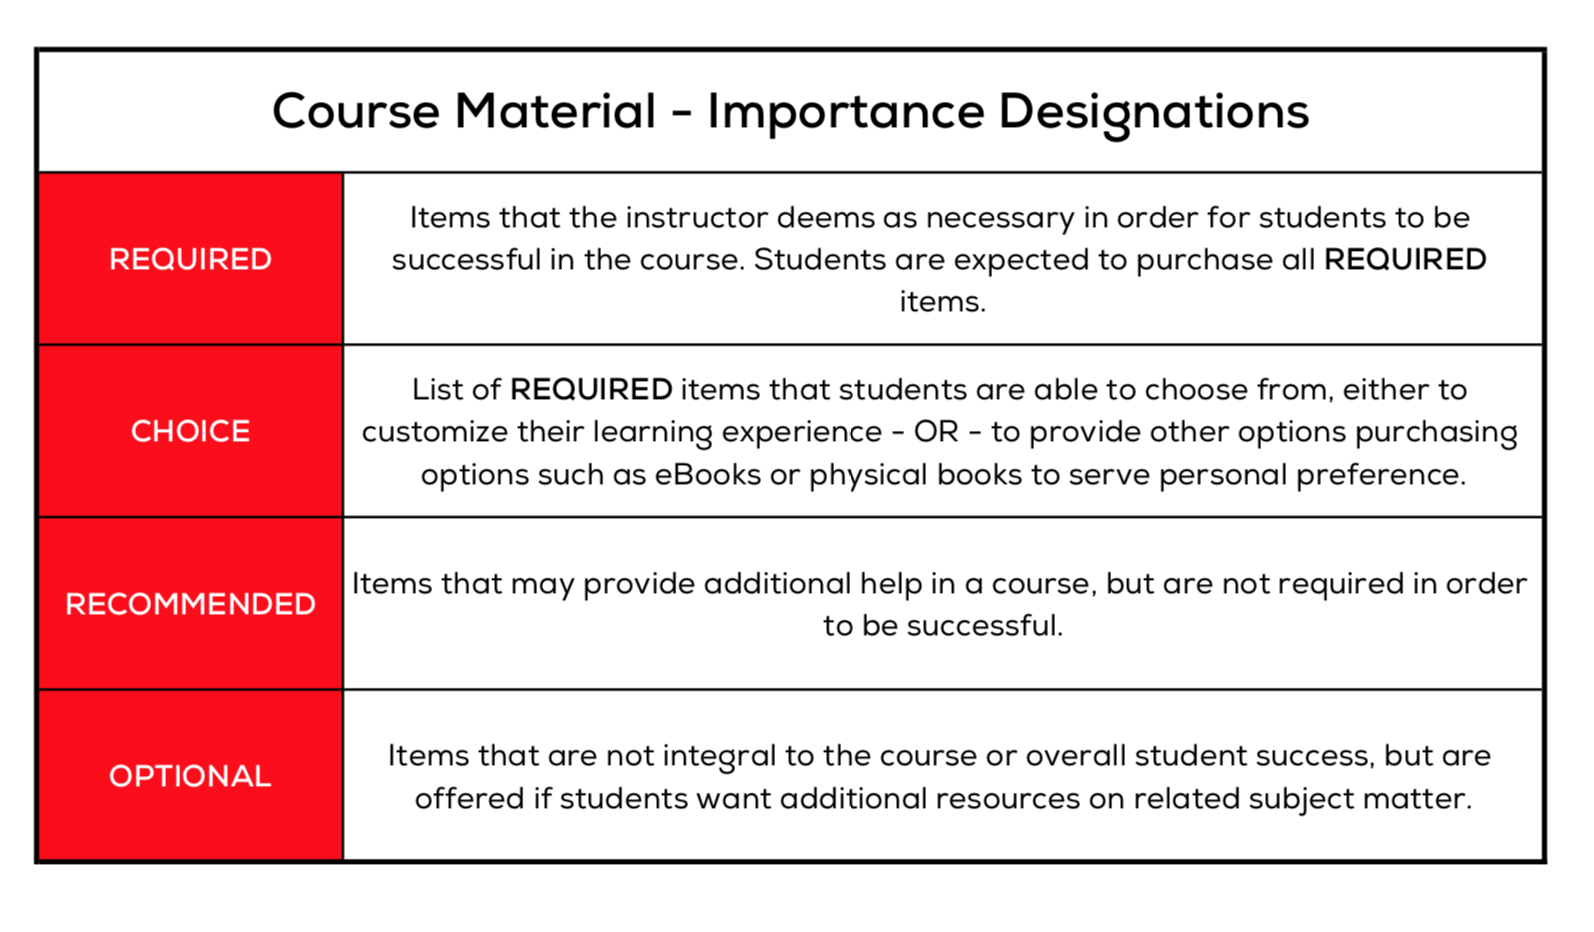 eCampus Important Course Material Designations